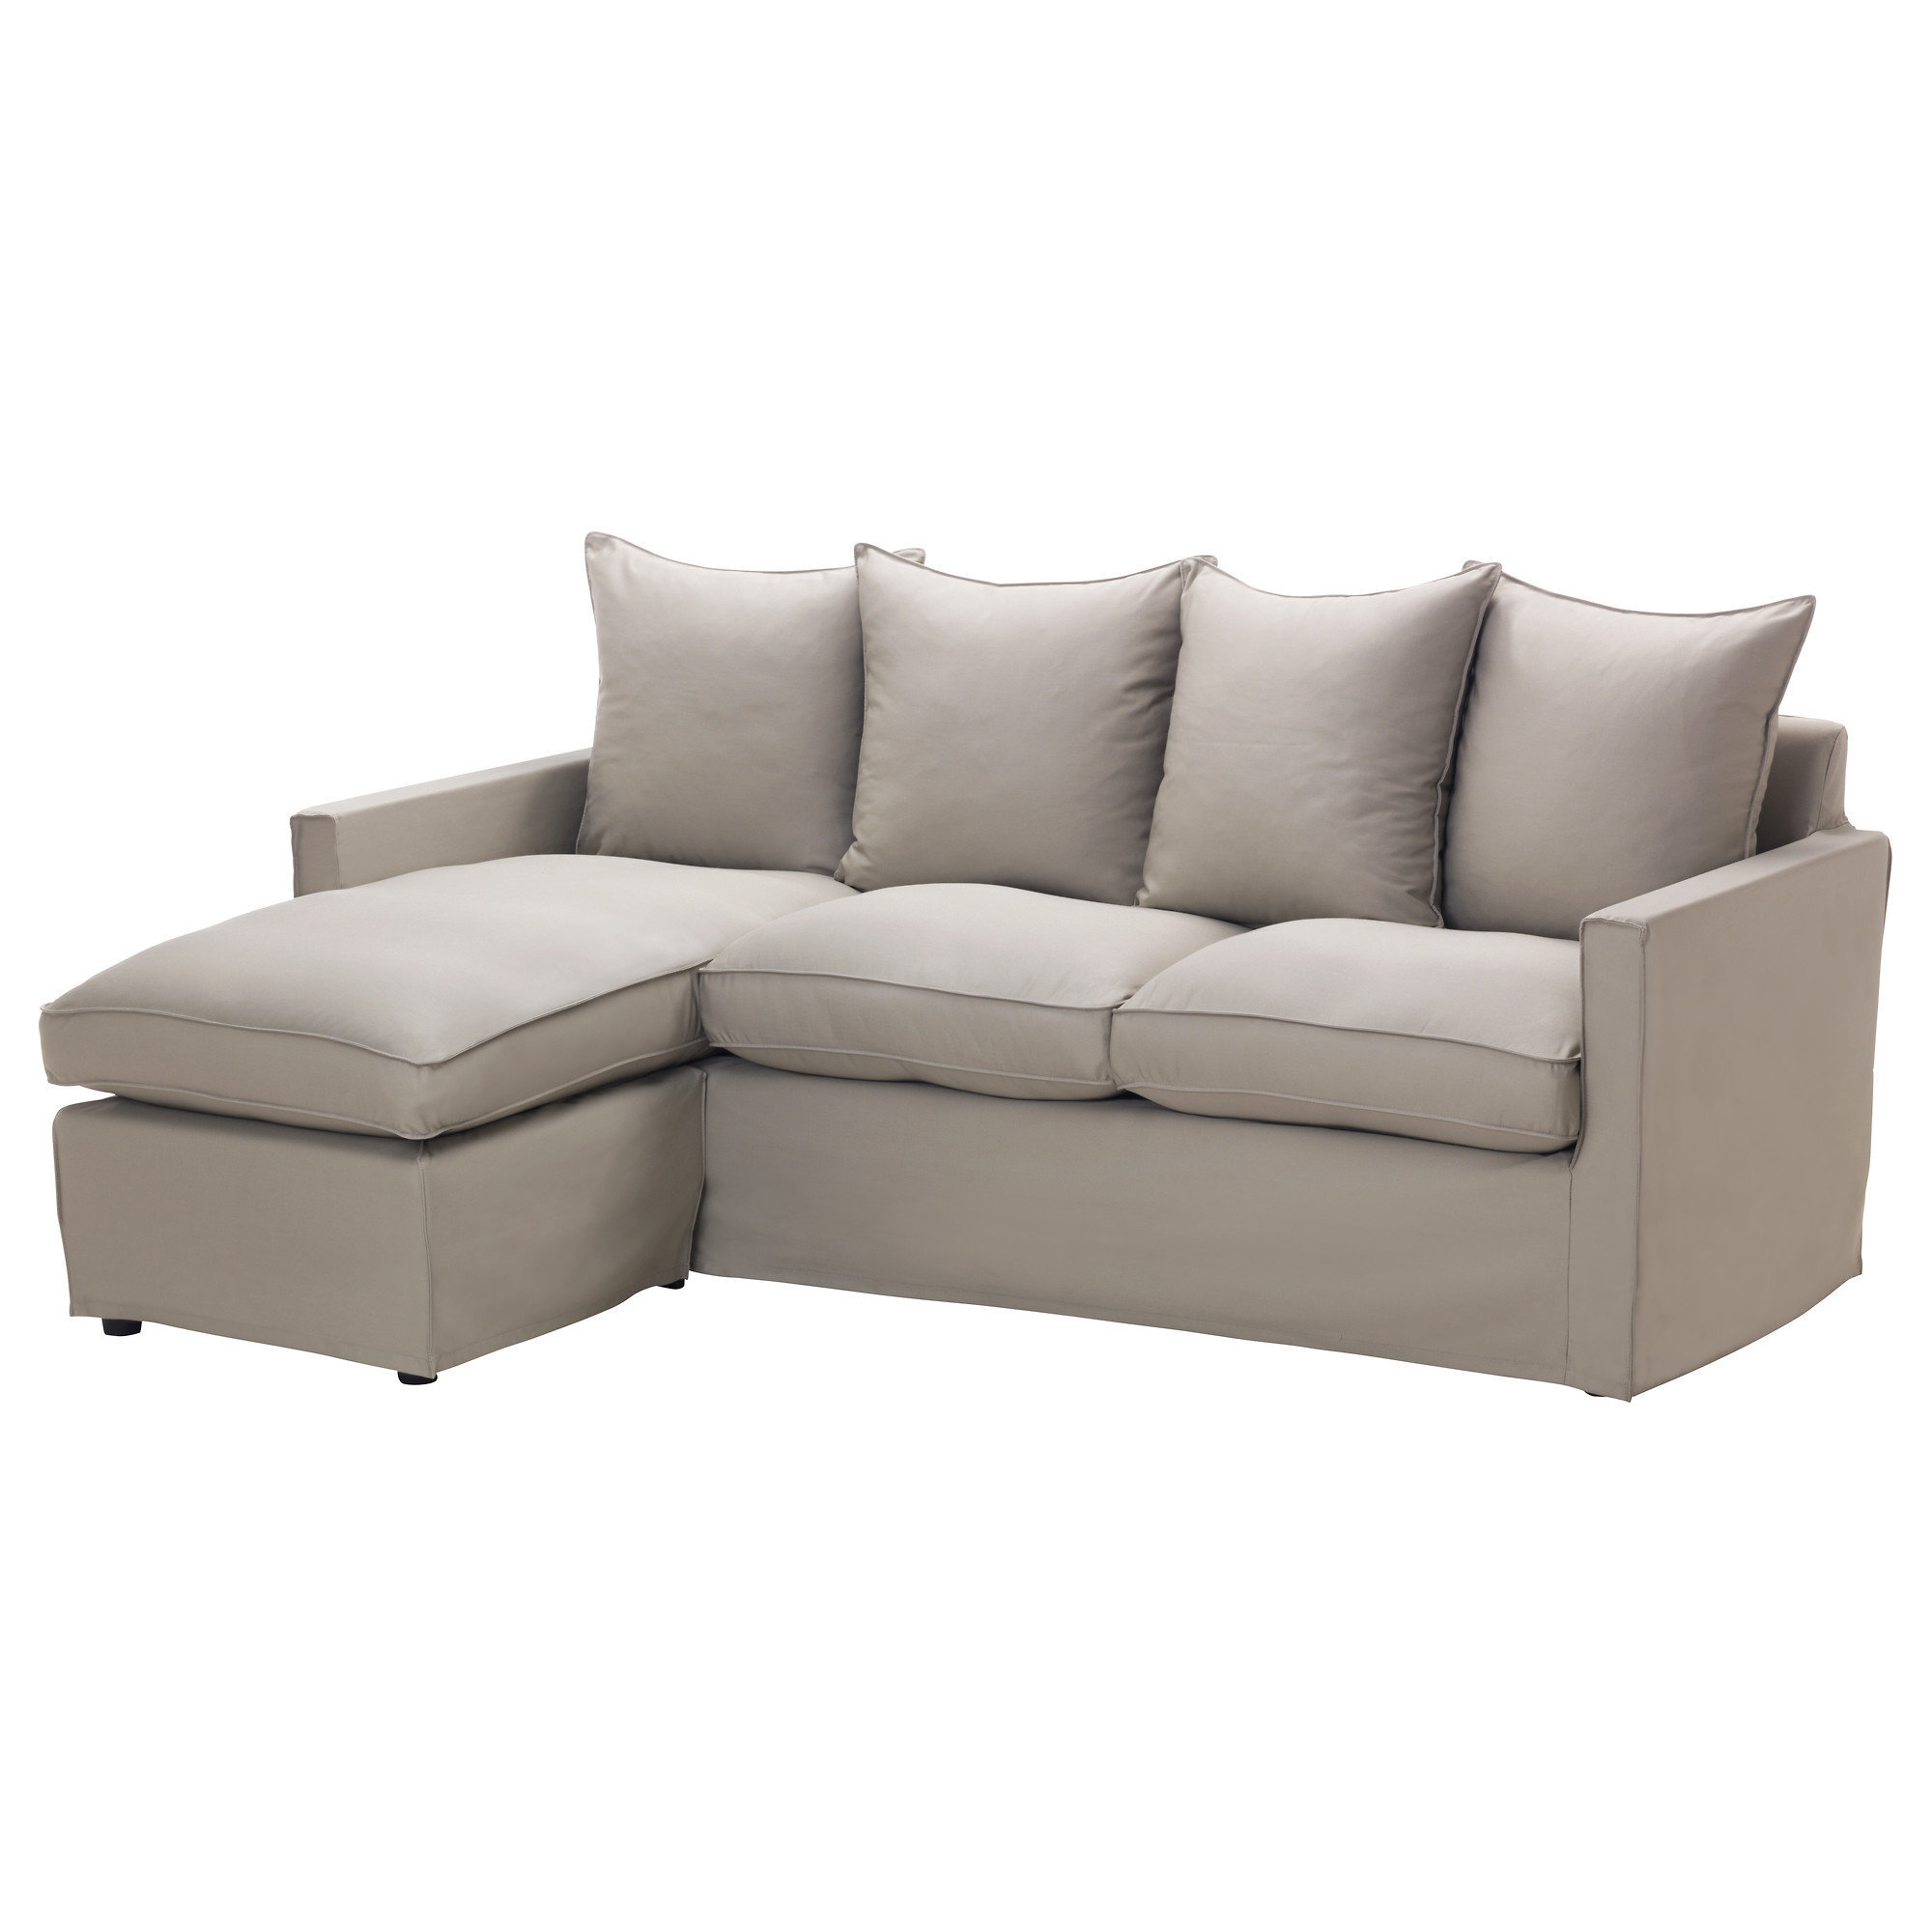 Ikea sofa and chaise lounge for Chaise longe sofa